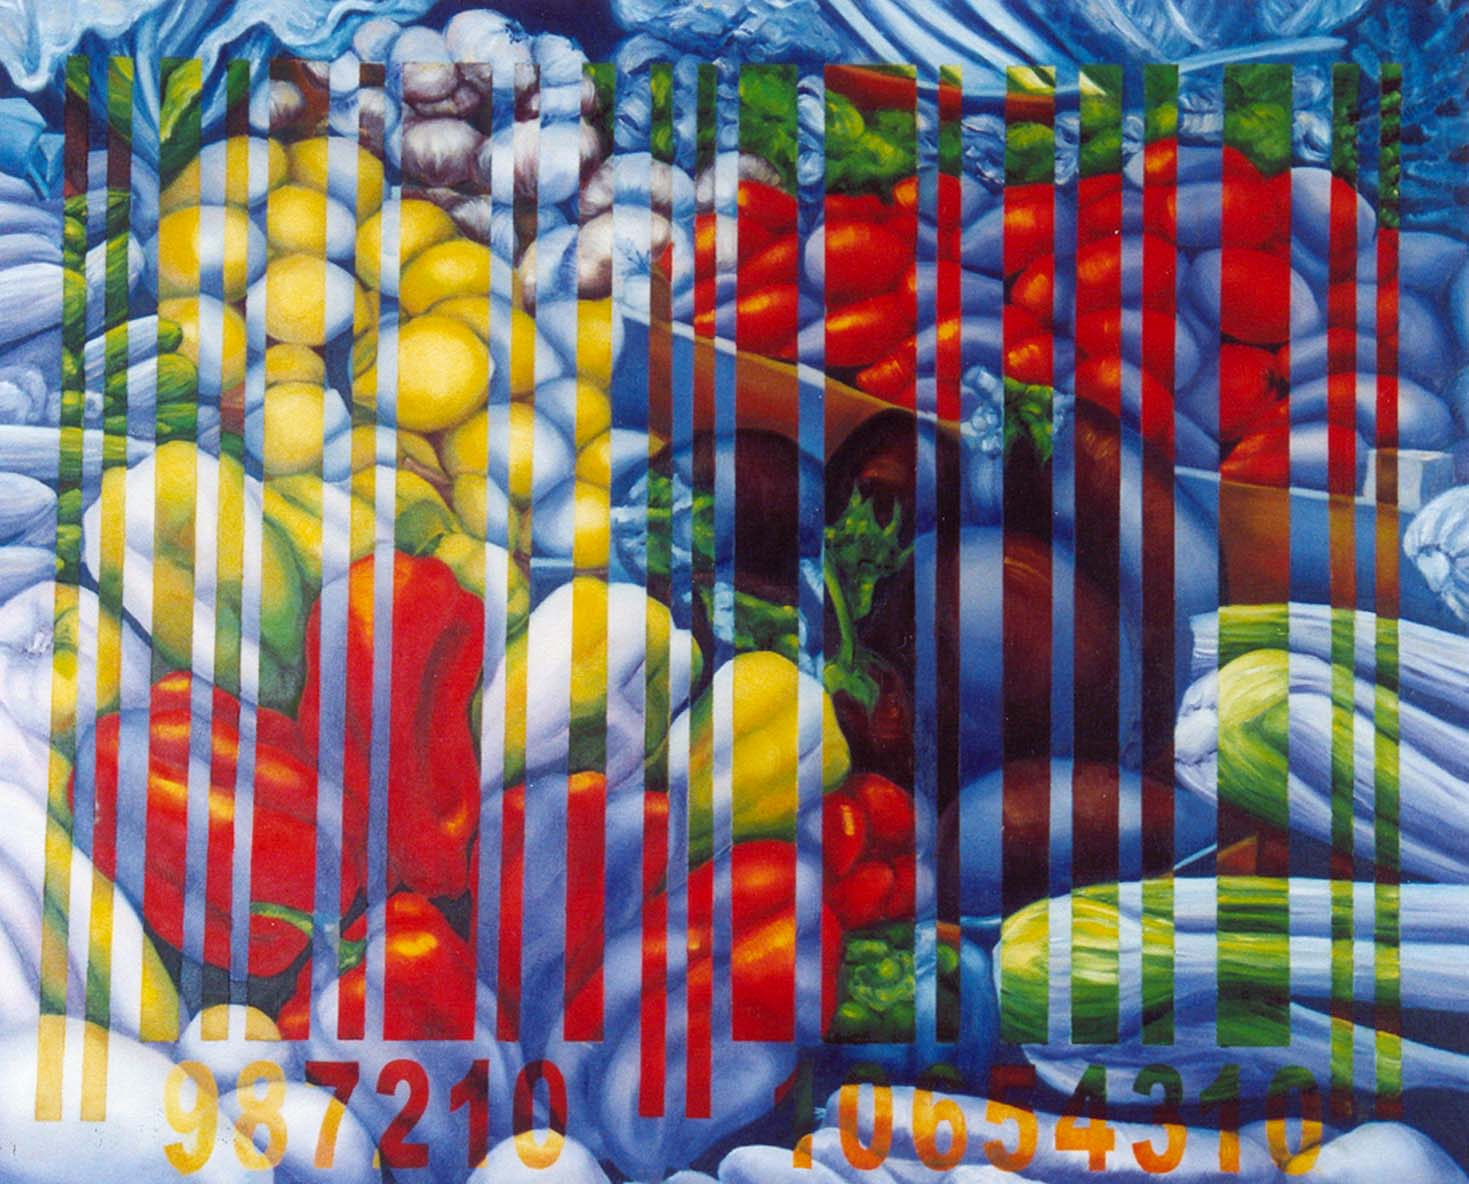 4-sebzeler2,vegetables2,verduras2,100x81tuv.üst.yboya, oil on canvas,óleo sobre tela.jpg